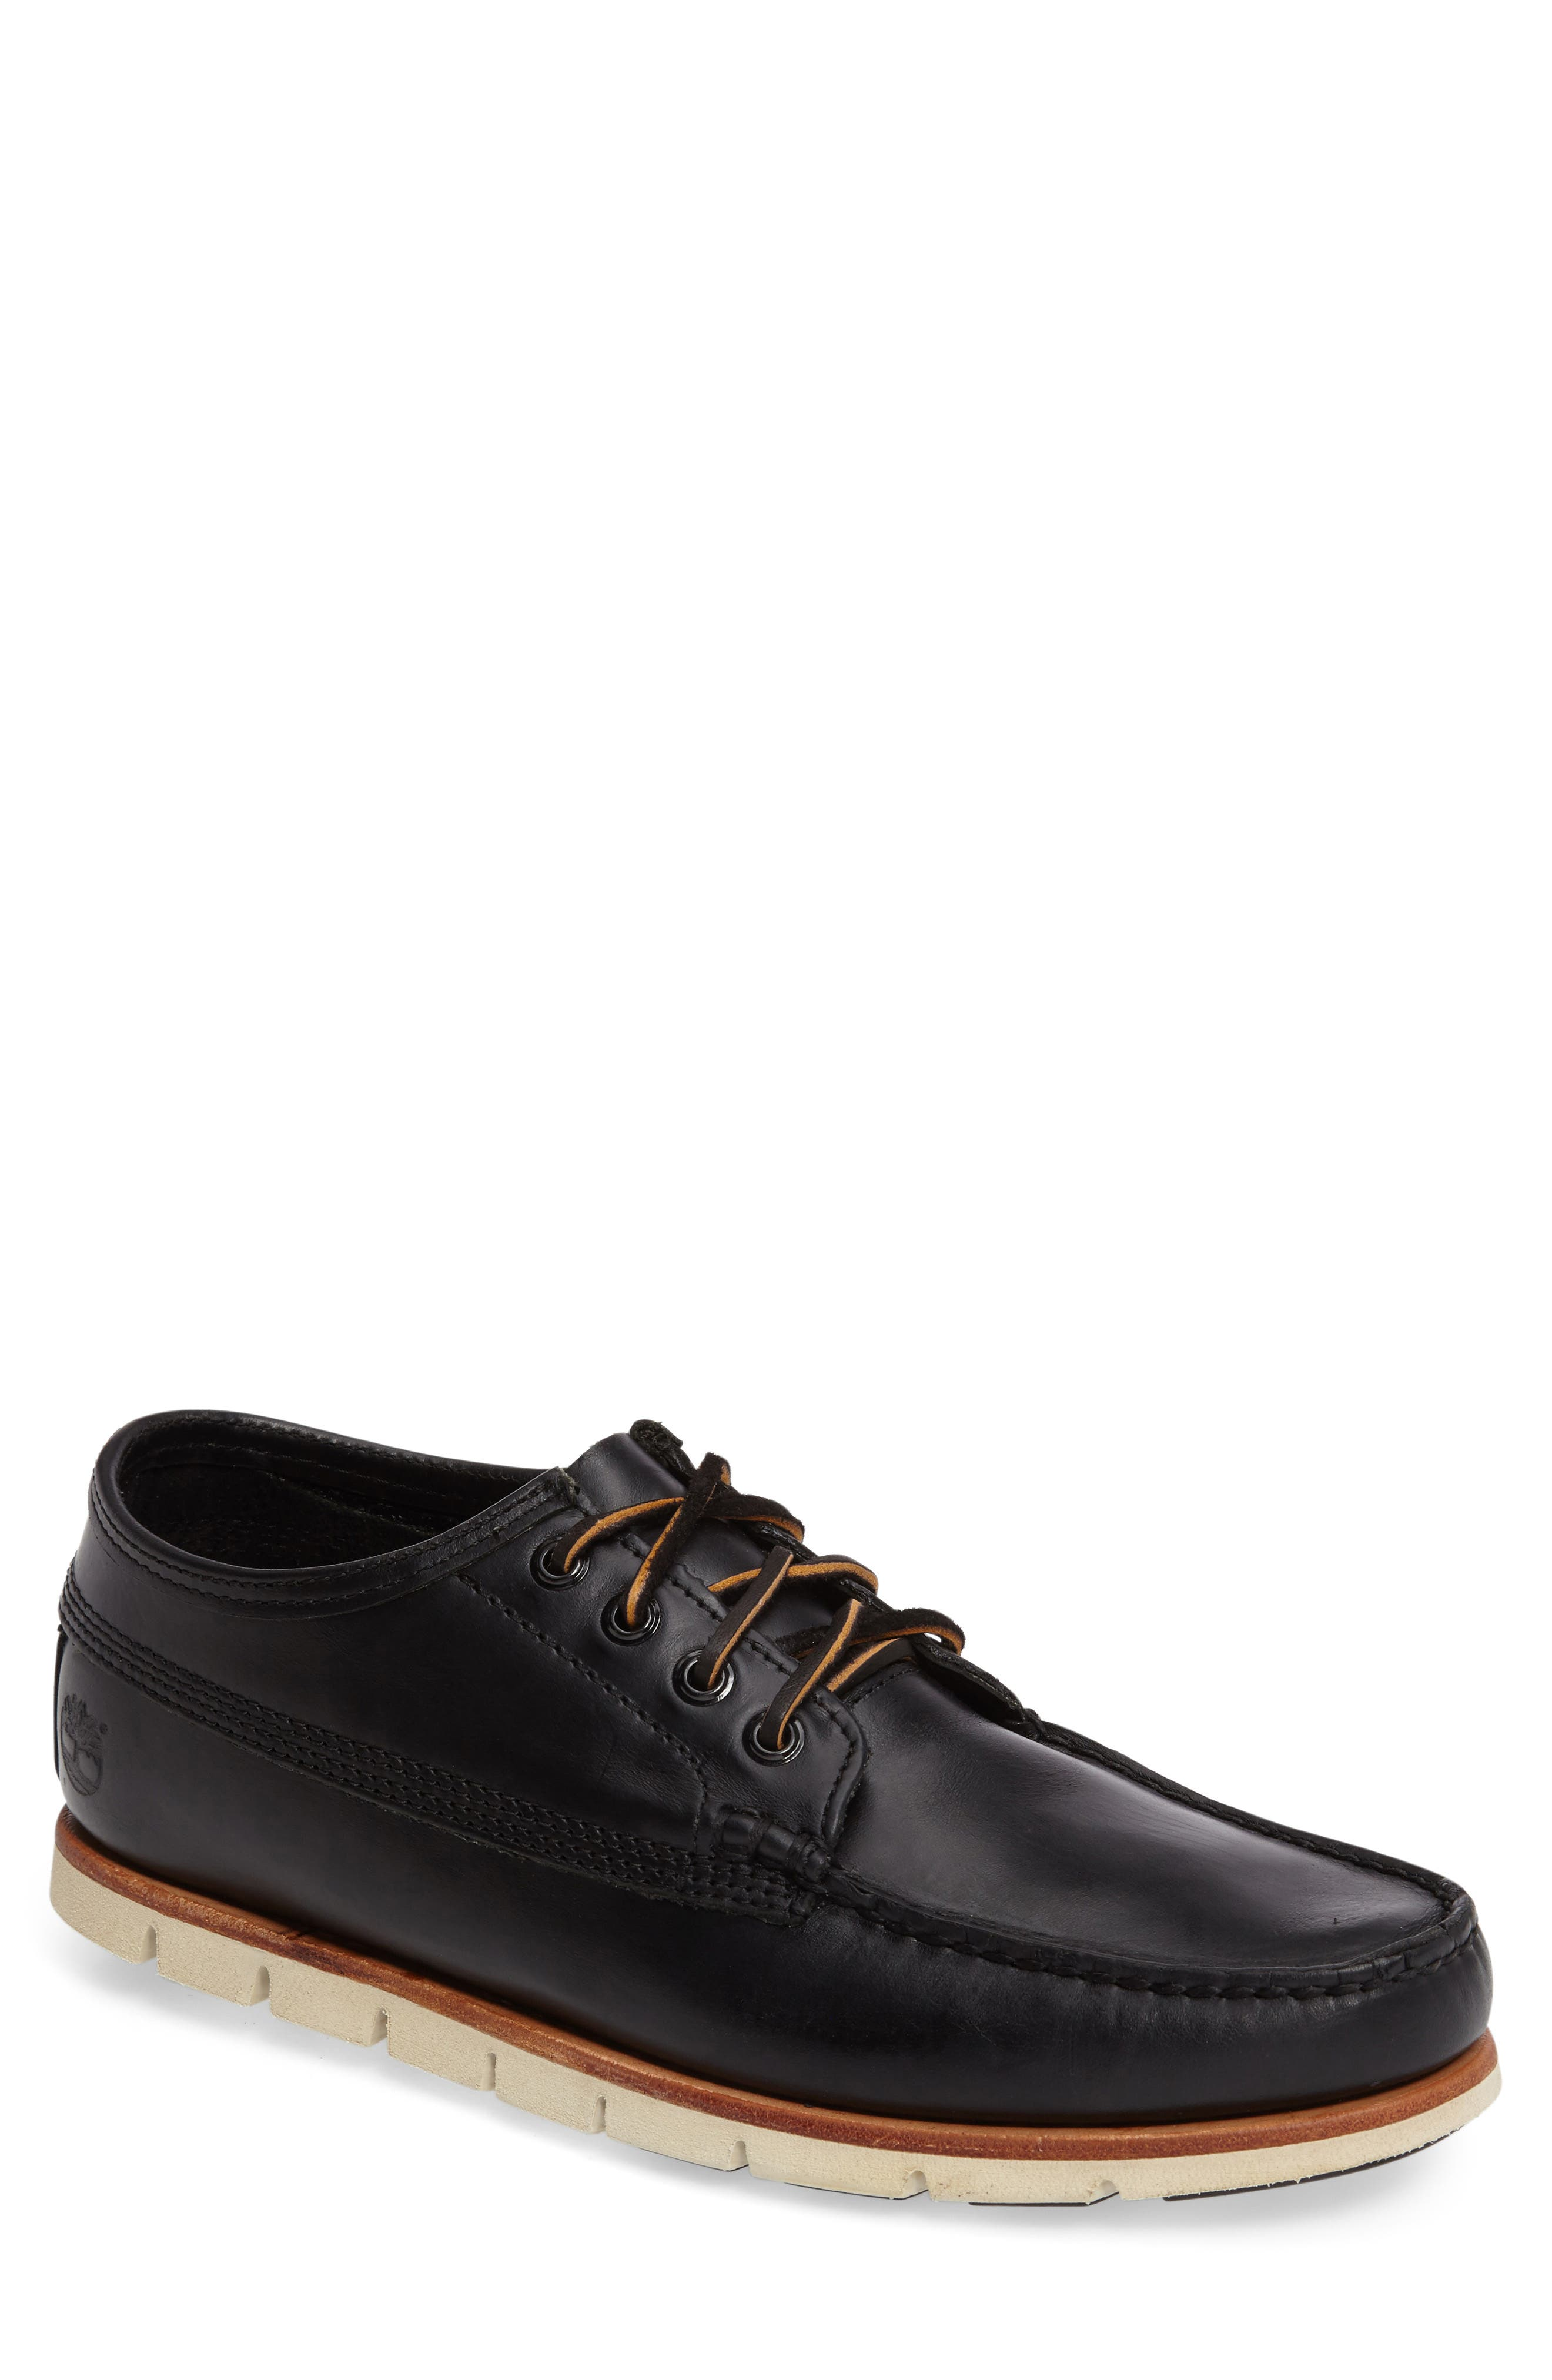 Tidelands Ranger Moc Toe Derby, Main, color, 001